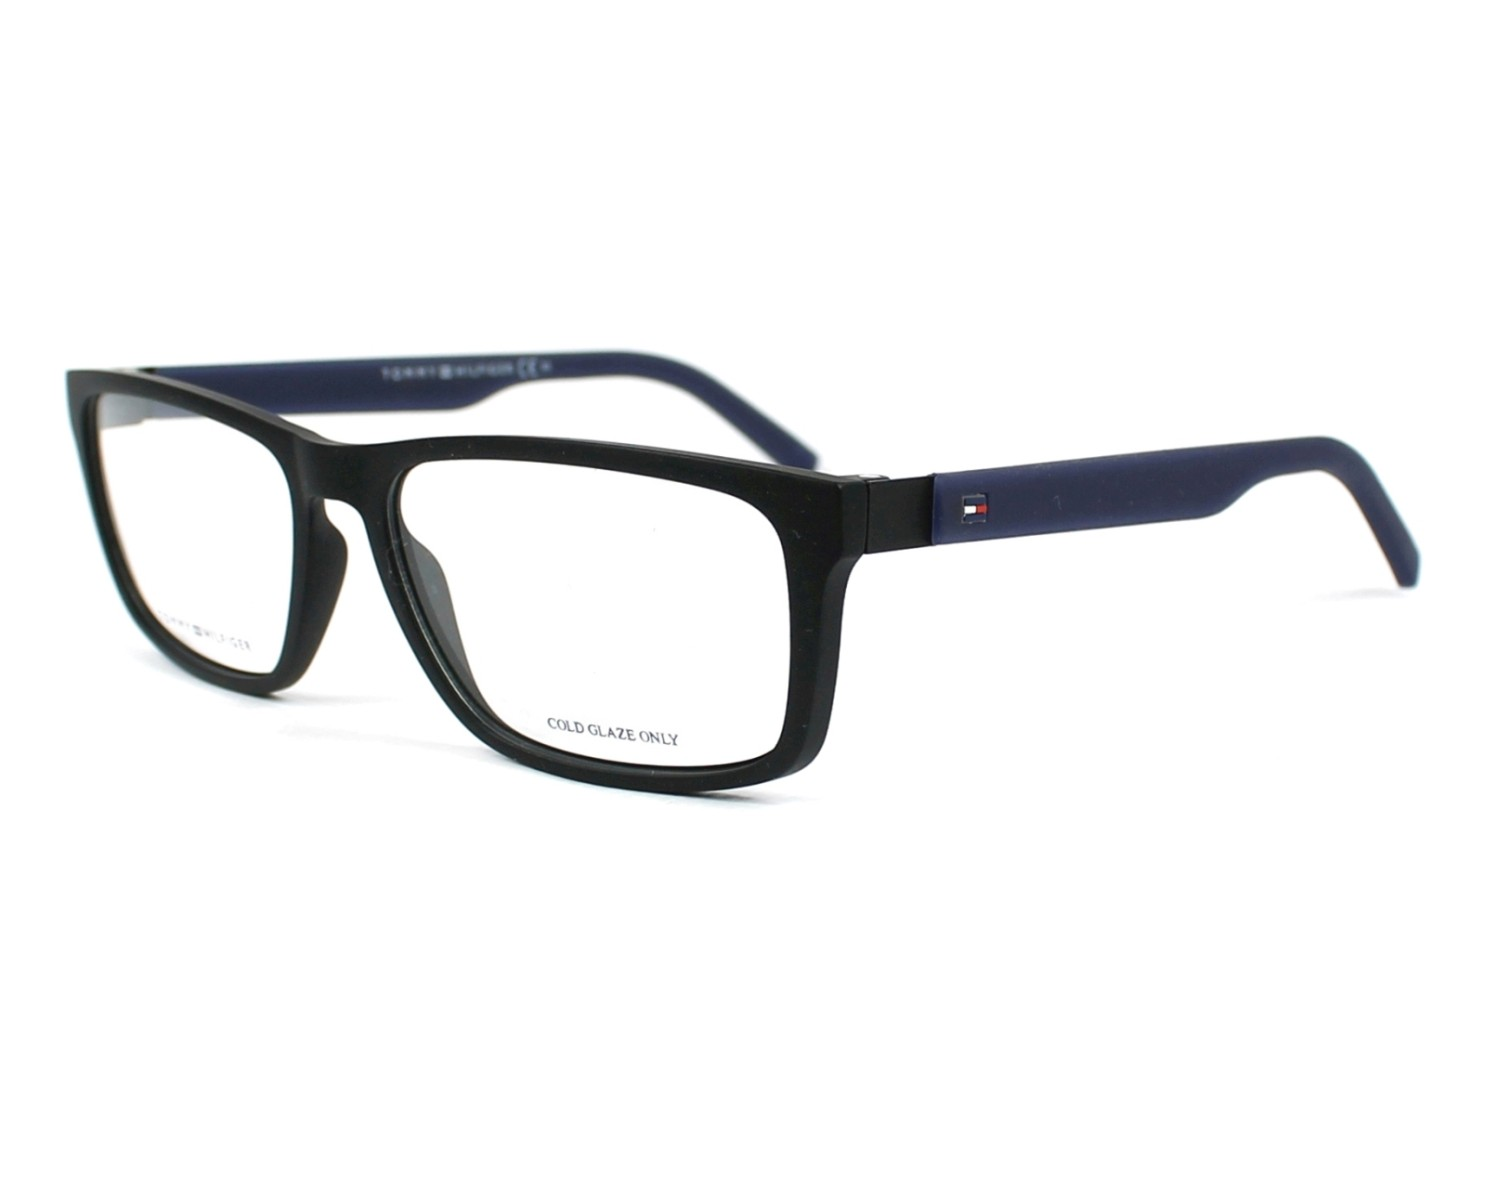 order your tommy hilfiger eyeglasses th 1404 r5y 55 today. Black Bedroom Furniture Sets. Home Design Ideas